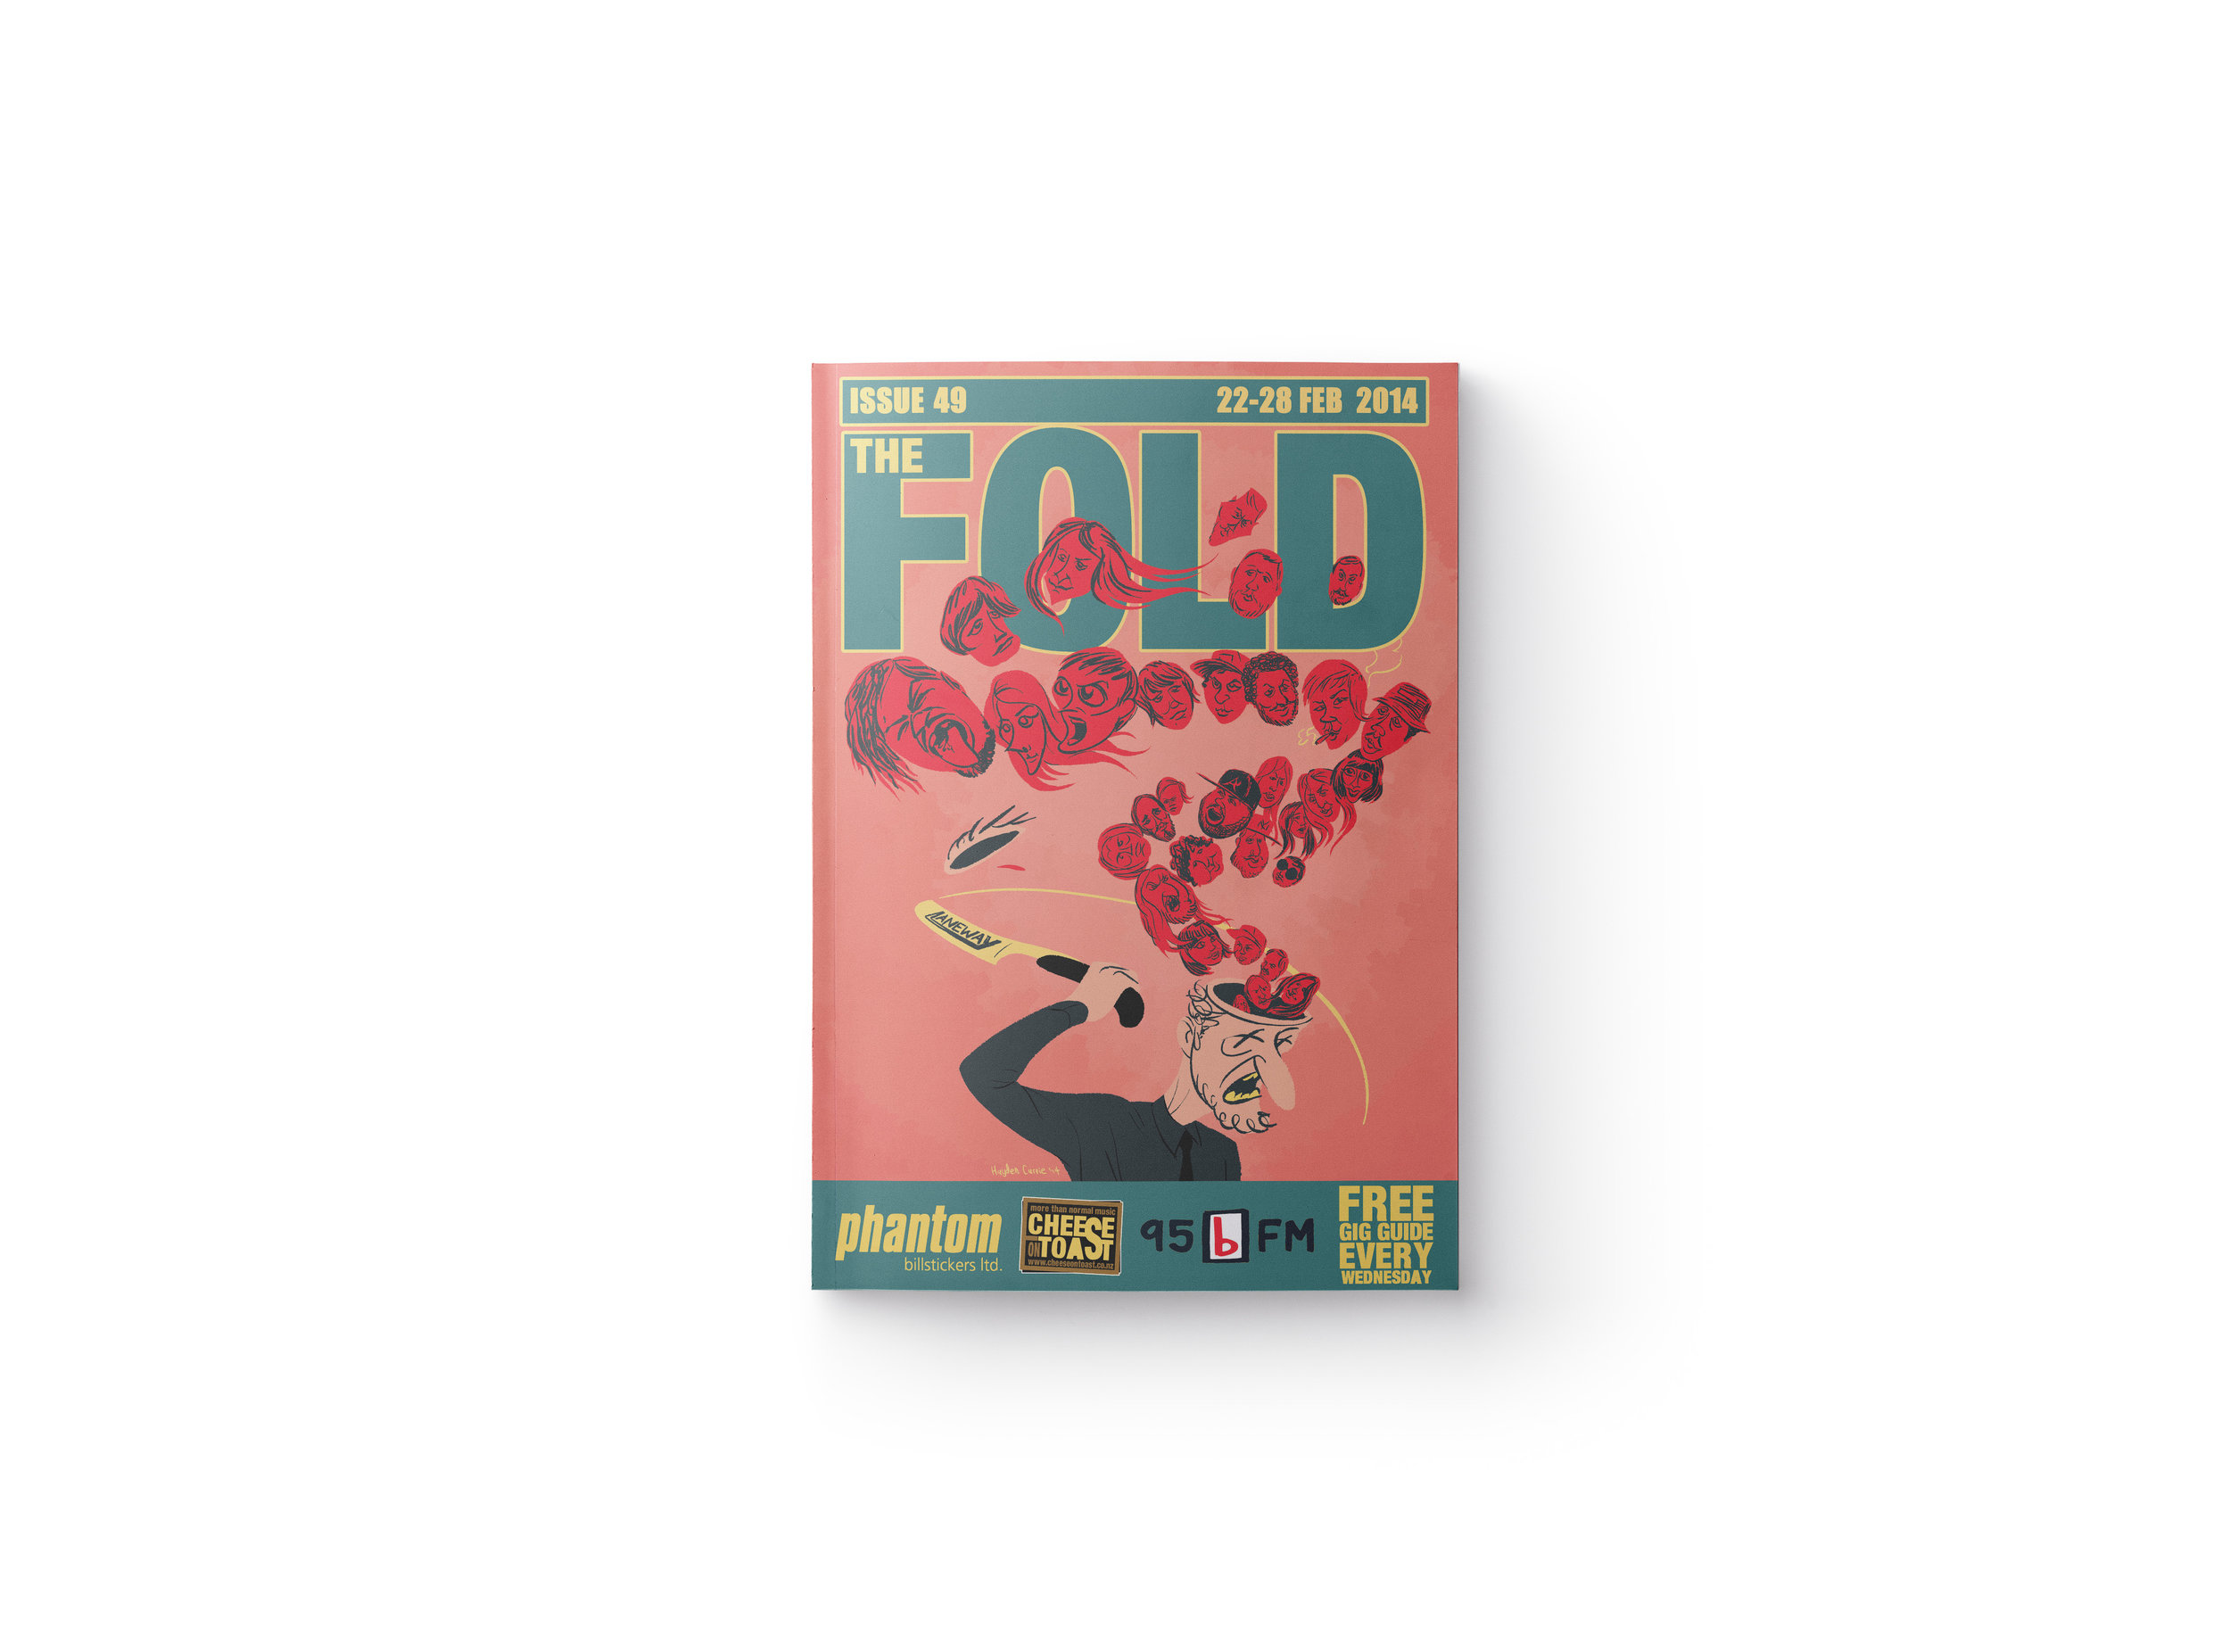 HaydenCurrie-Illustration-FOLD-Magazine-Cover-Mockup.jpg